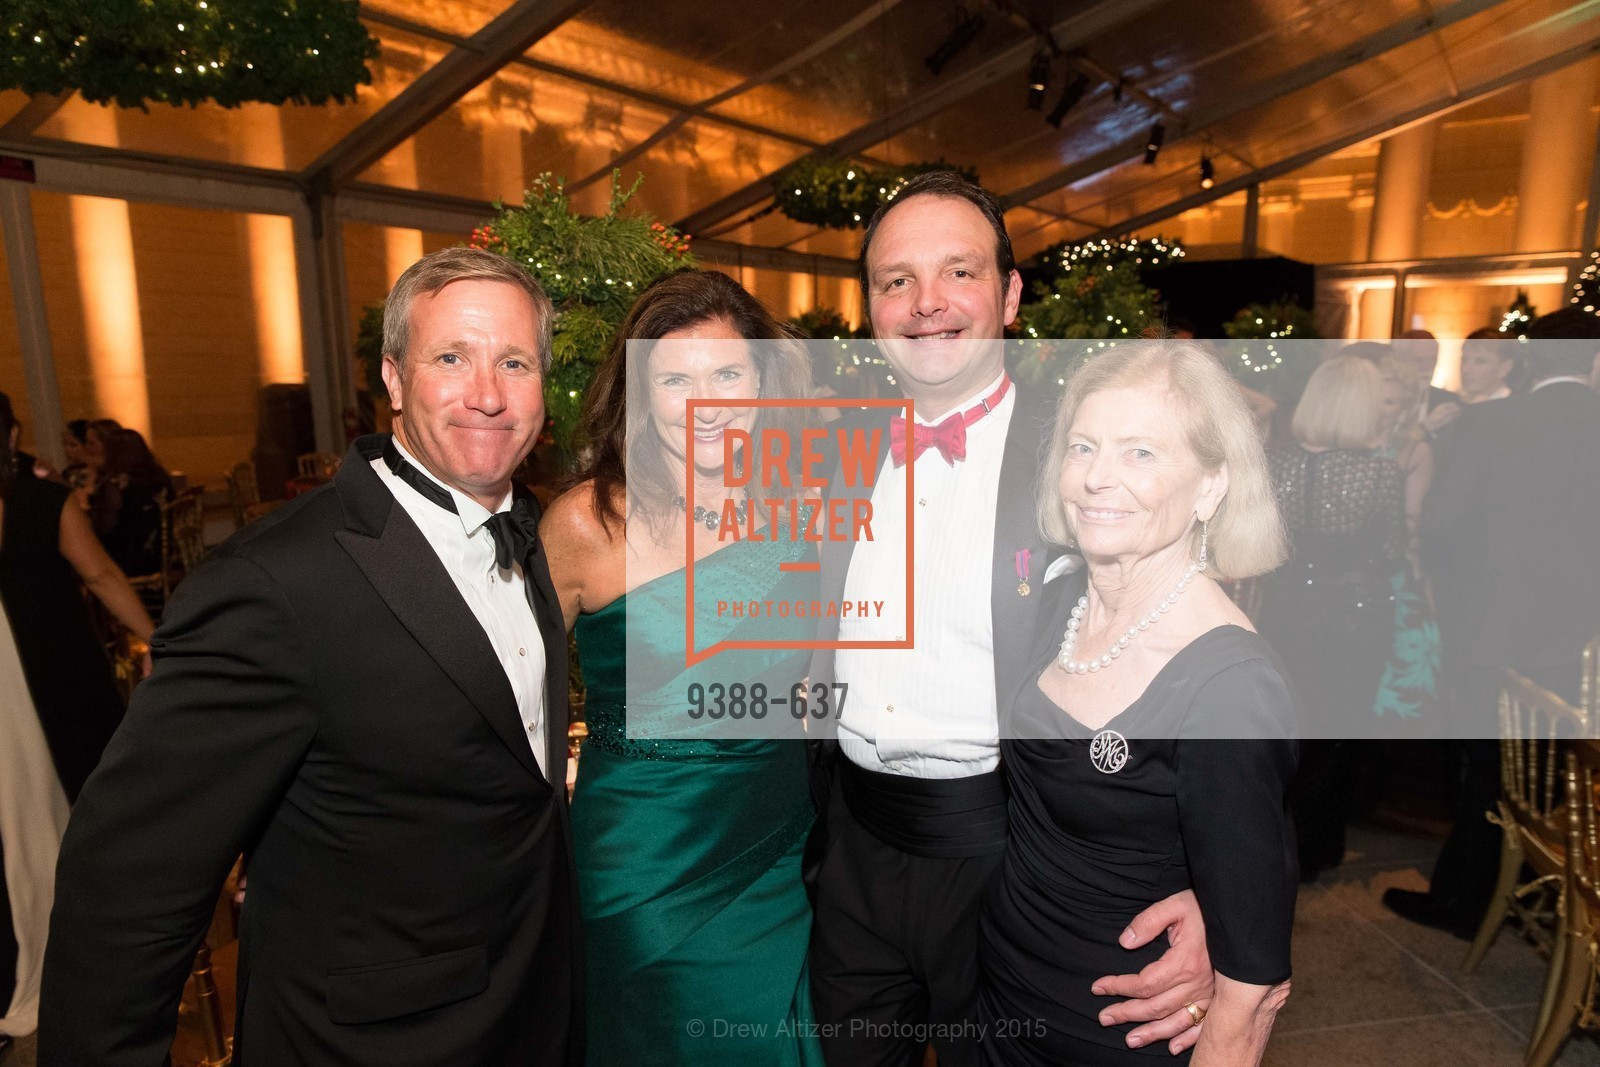 Sean Julian, Linda Zider, Guillaume Orliac, Maron Cope, AN ELEGANT EVENING Presented by the Fine Arts Museums of San Francisco, Legion of Honor, Court of Honor. 100 34th Ave, December 8th, 2015,Drew Altizer, Drew Altizer Photography, full-service agency, private events, San Francisco photographer, photographer california